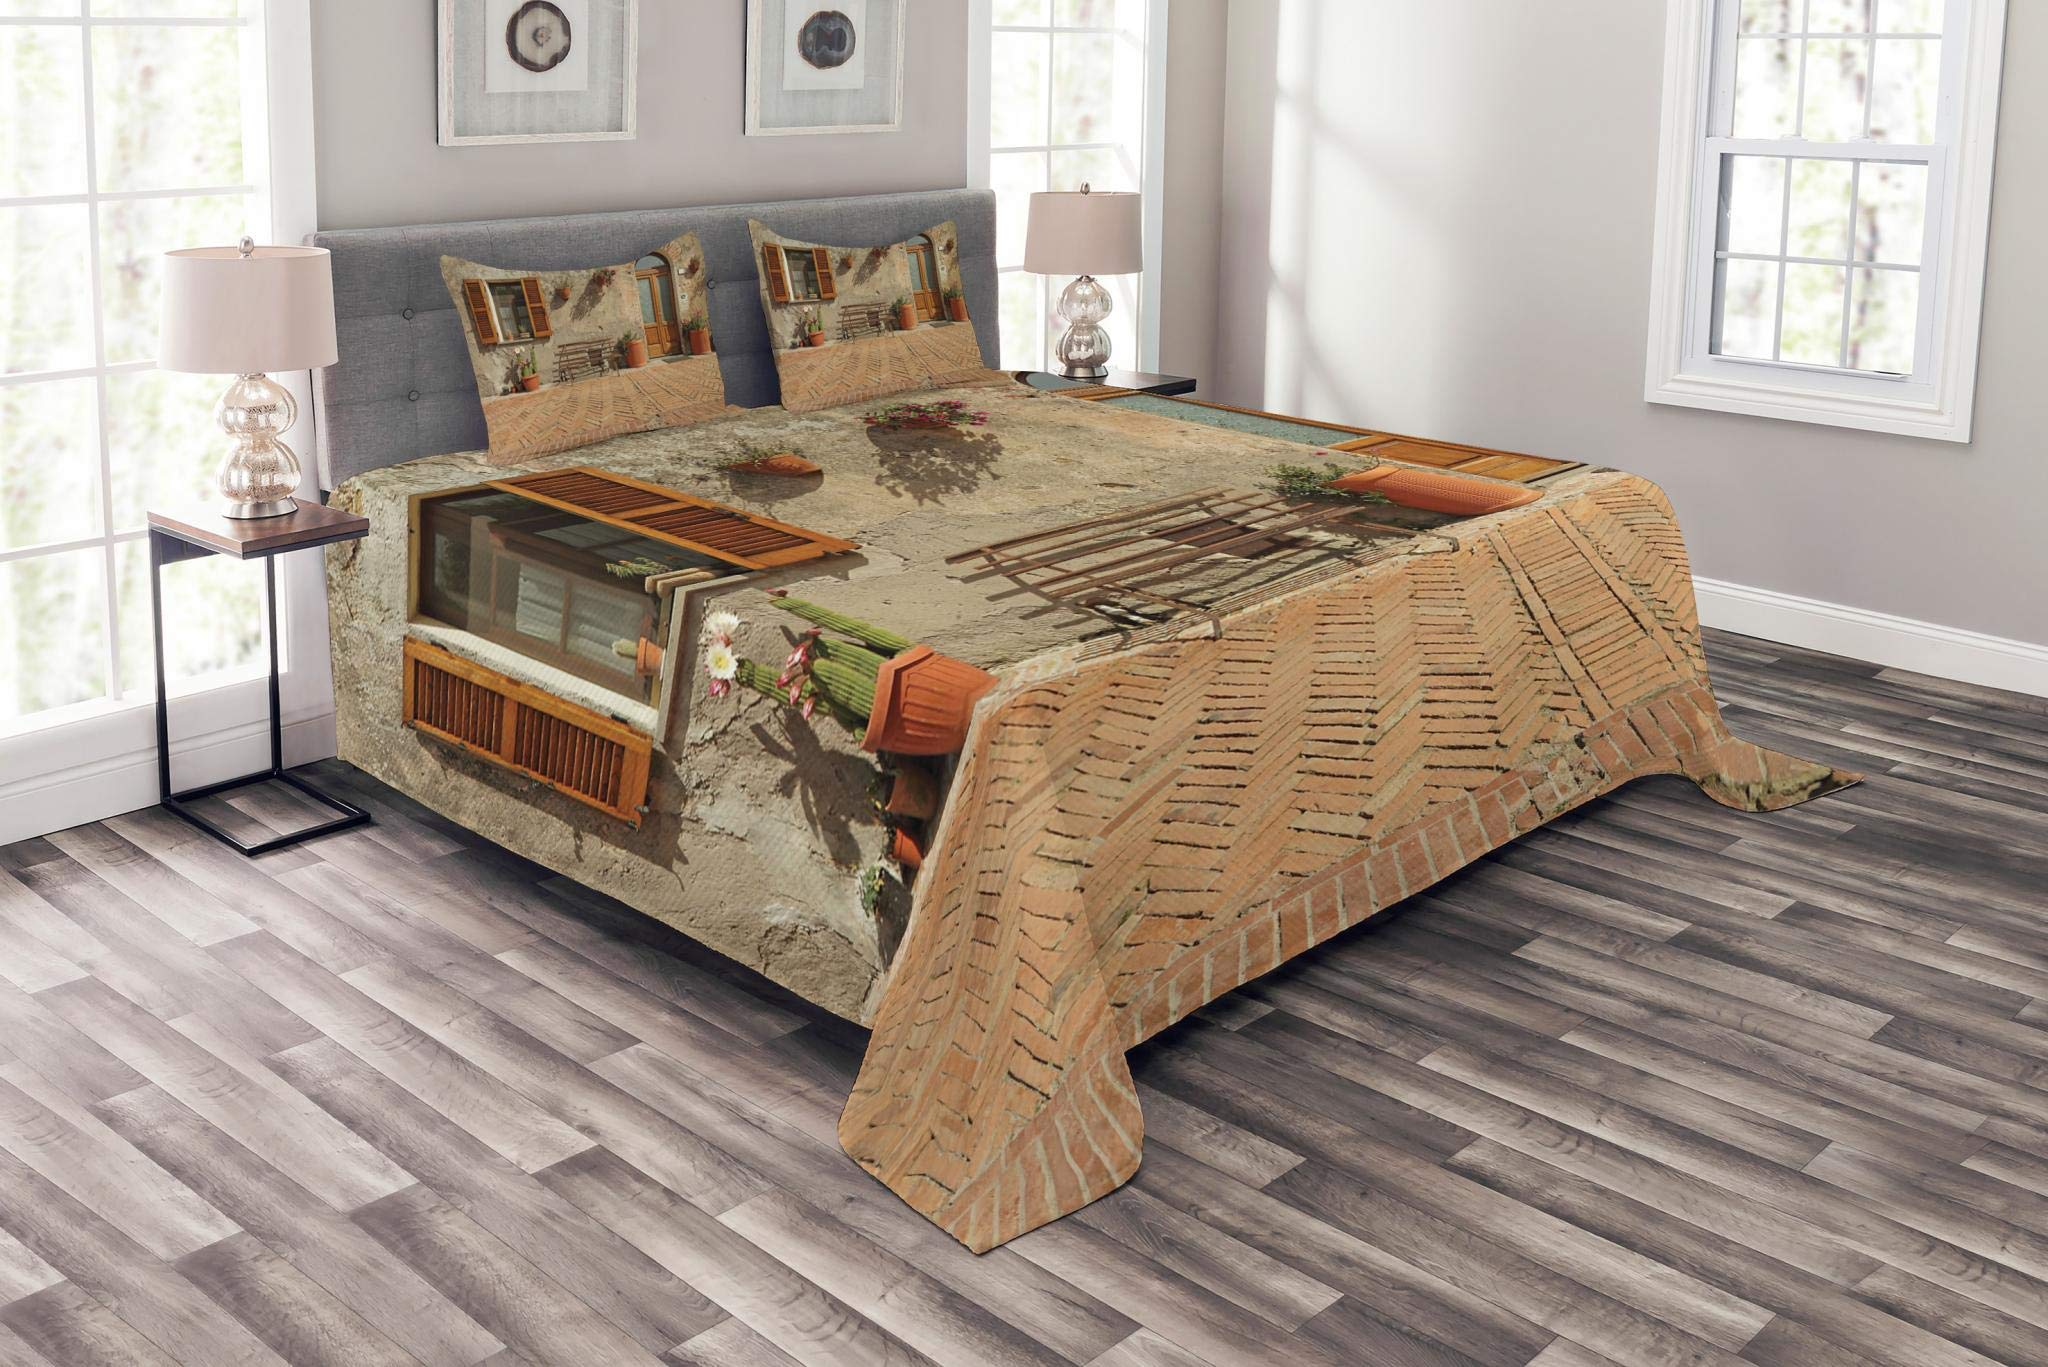 Lunarable Tuscan Bedspread Set Queen Size, Medieval Facade Rustic Wooden Door Ancient Brick Wall in Small Village, Decorative Quilted 3 Piece Coverlet Set with 2 Pillow Shams, Tan and Pale Cinnamon